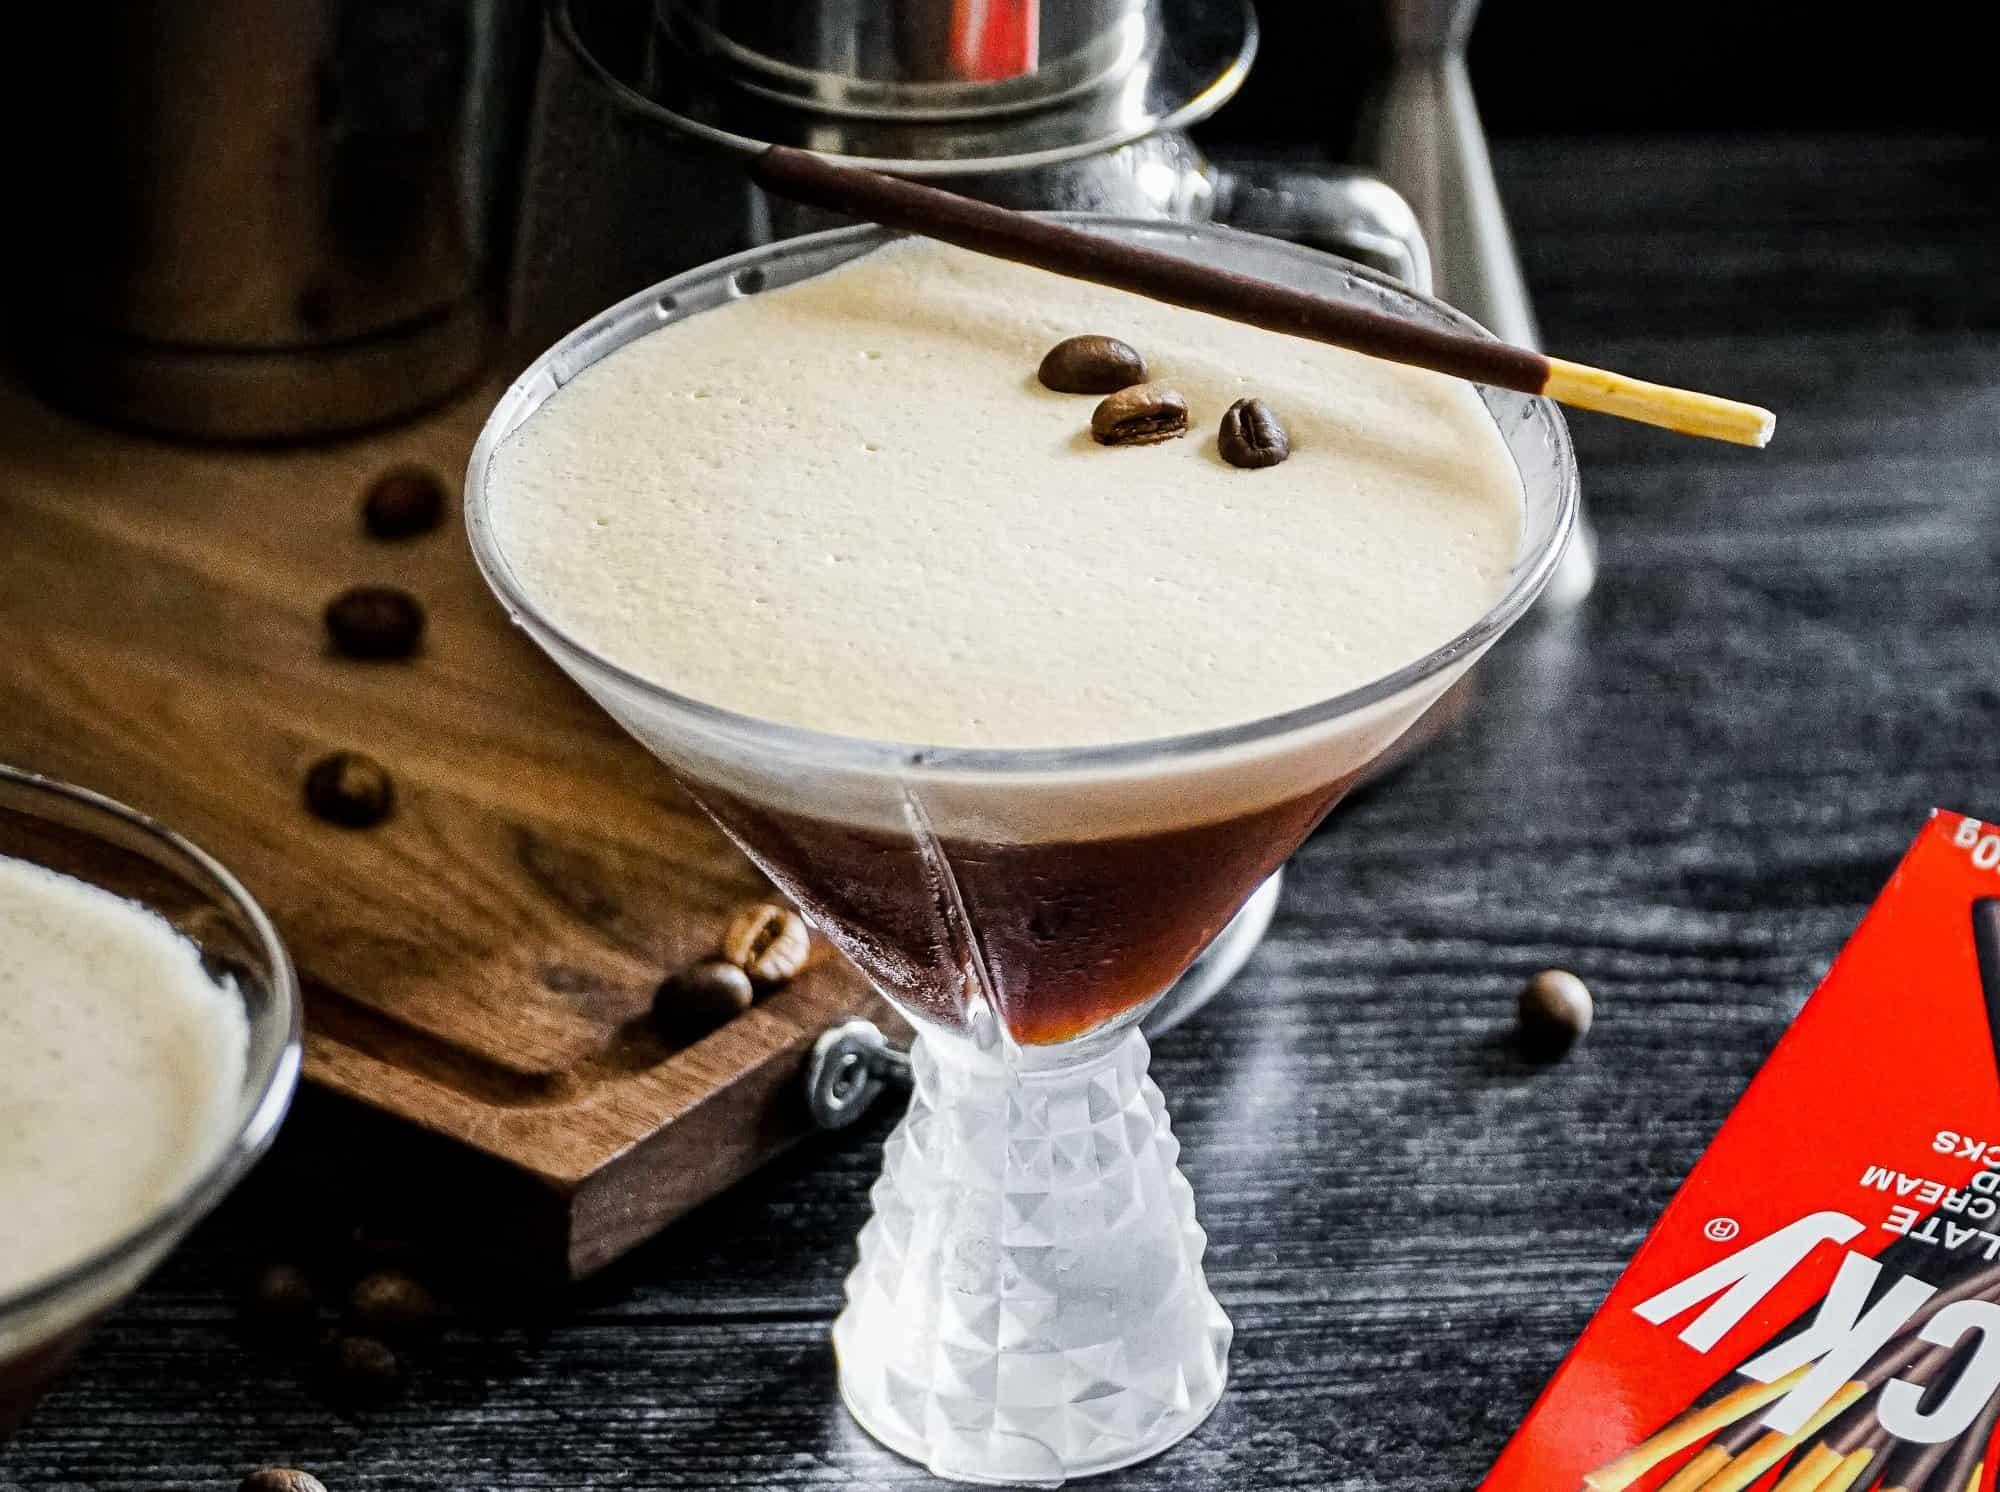 Shake-up a Rich Espresso Martini with 3 BC-Based Producers